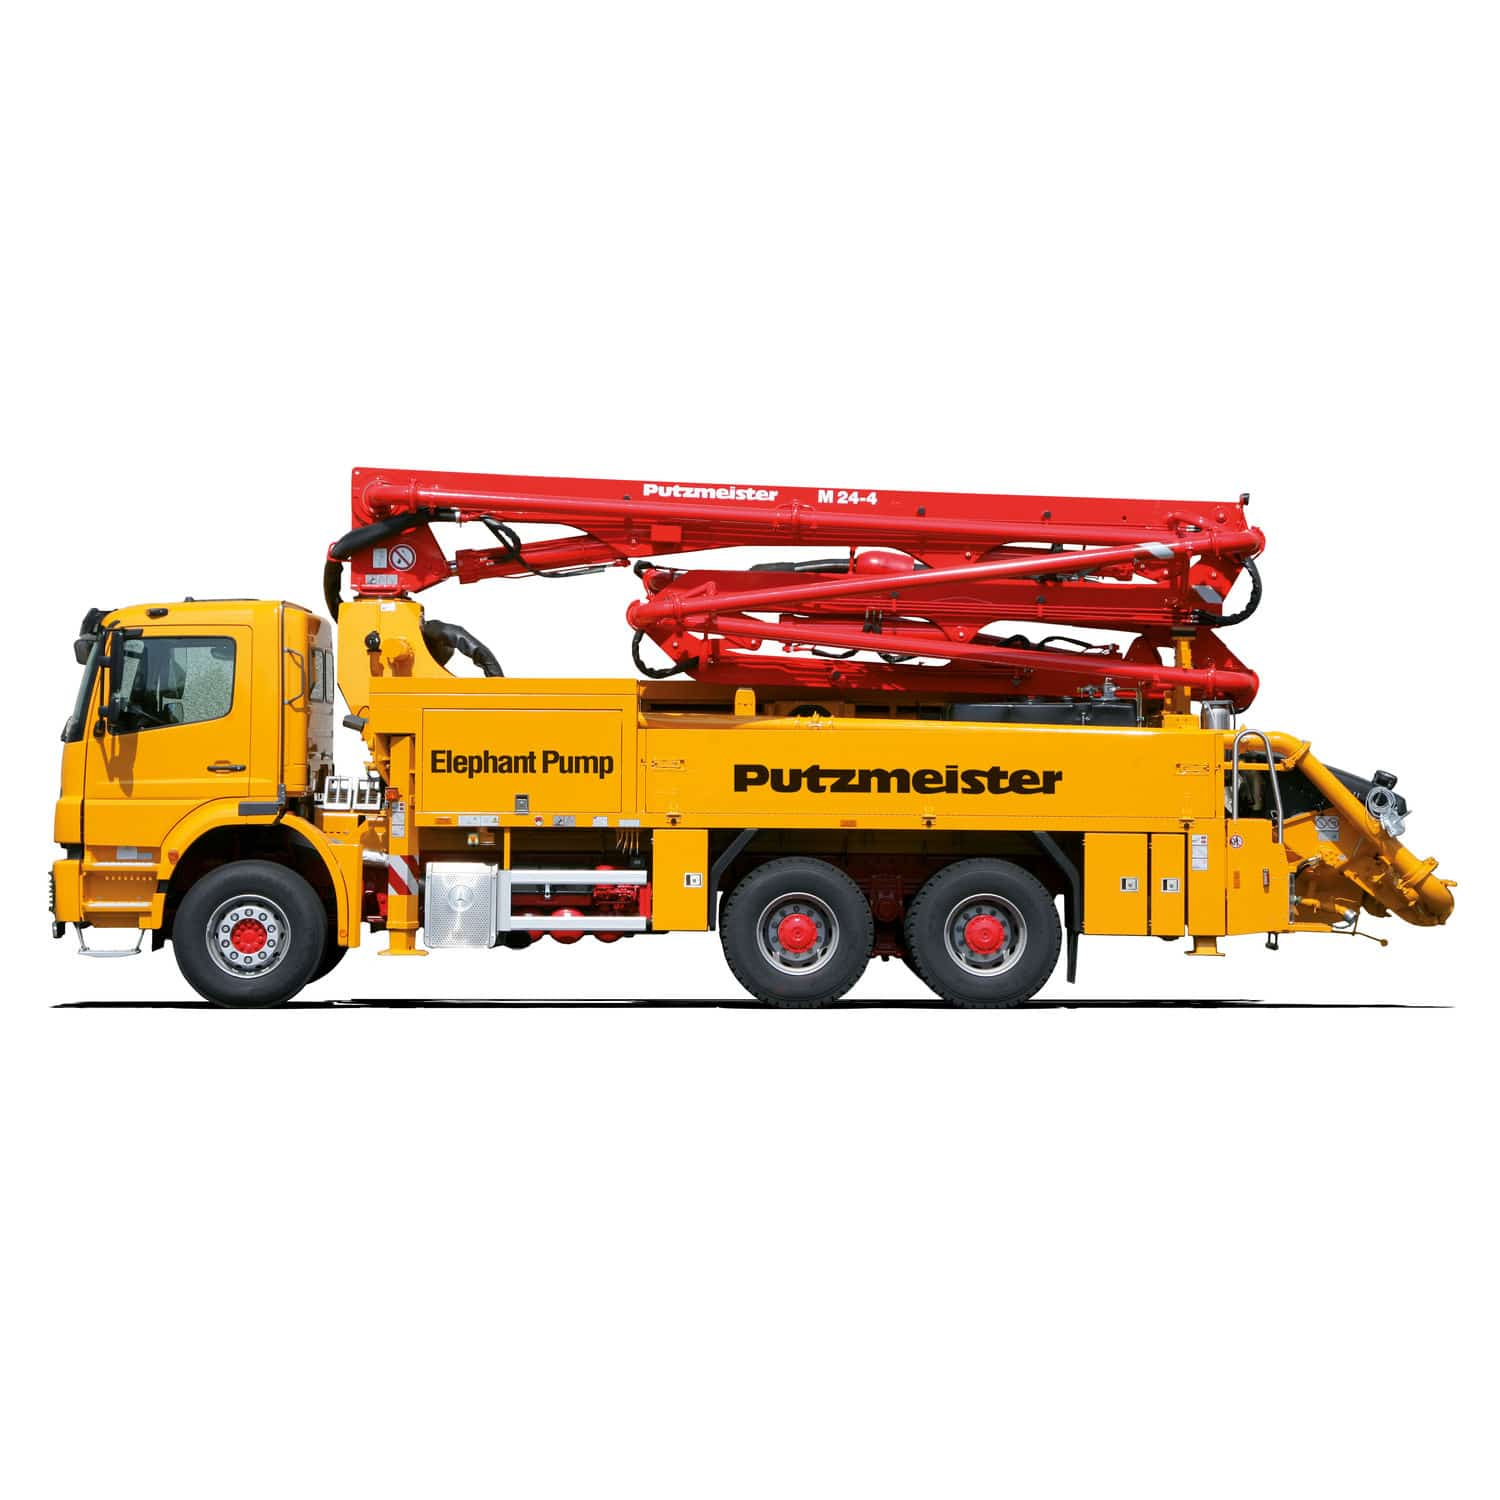 Construction truck-mounted concrete pump - M 24-4 - PutzmeisterConstruction truck-mounted concrete pump - M 24-4